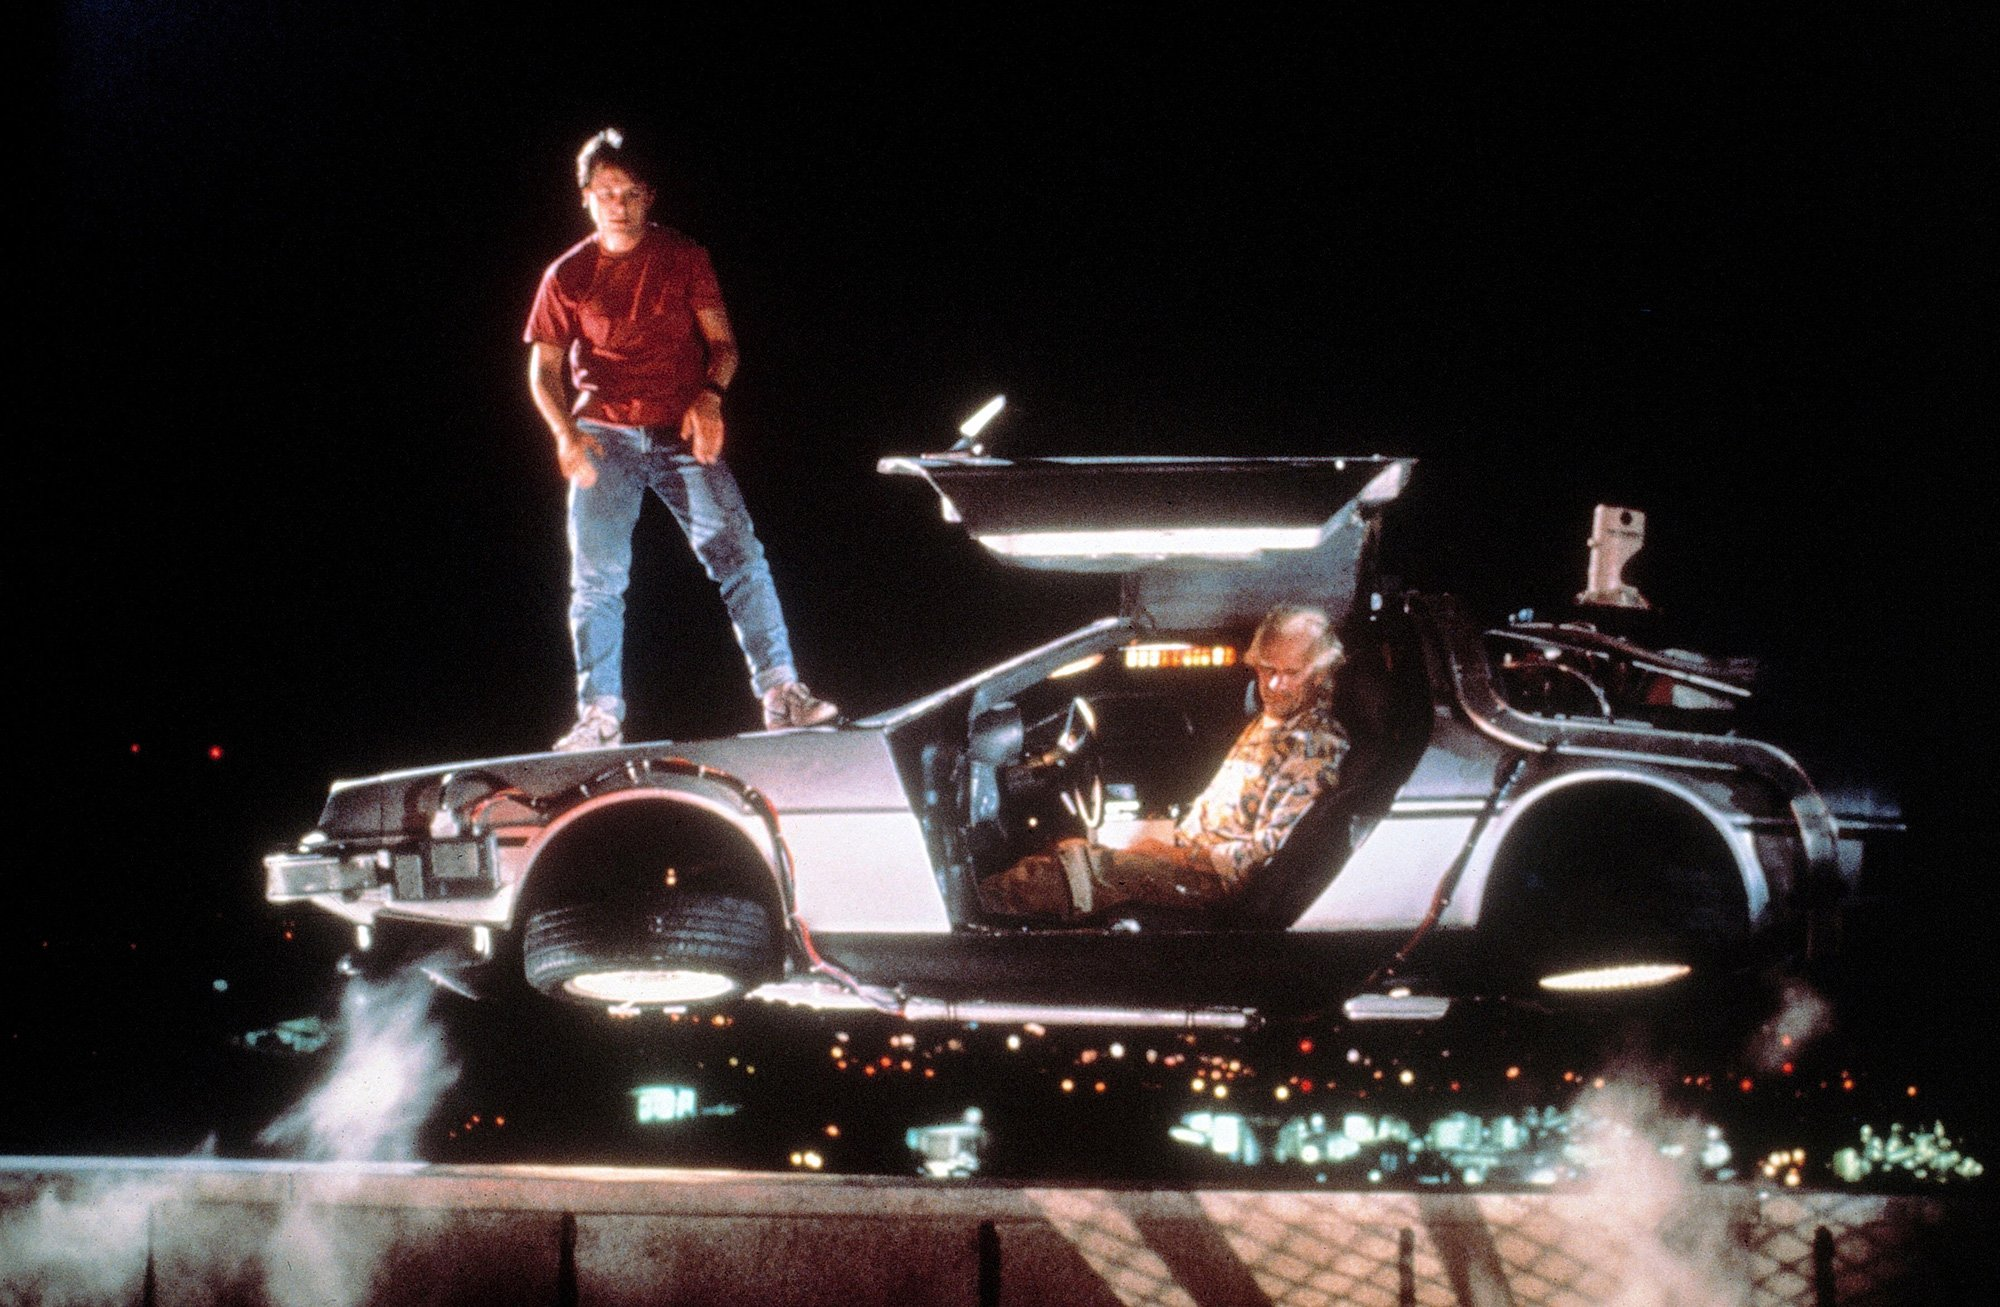 The DeLorean model became famous thanks to the film Back to the Future.